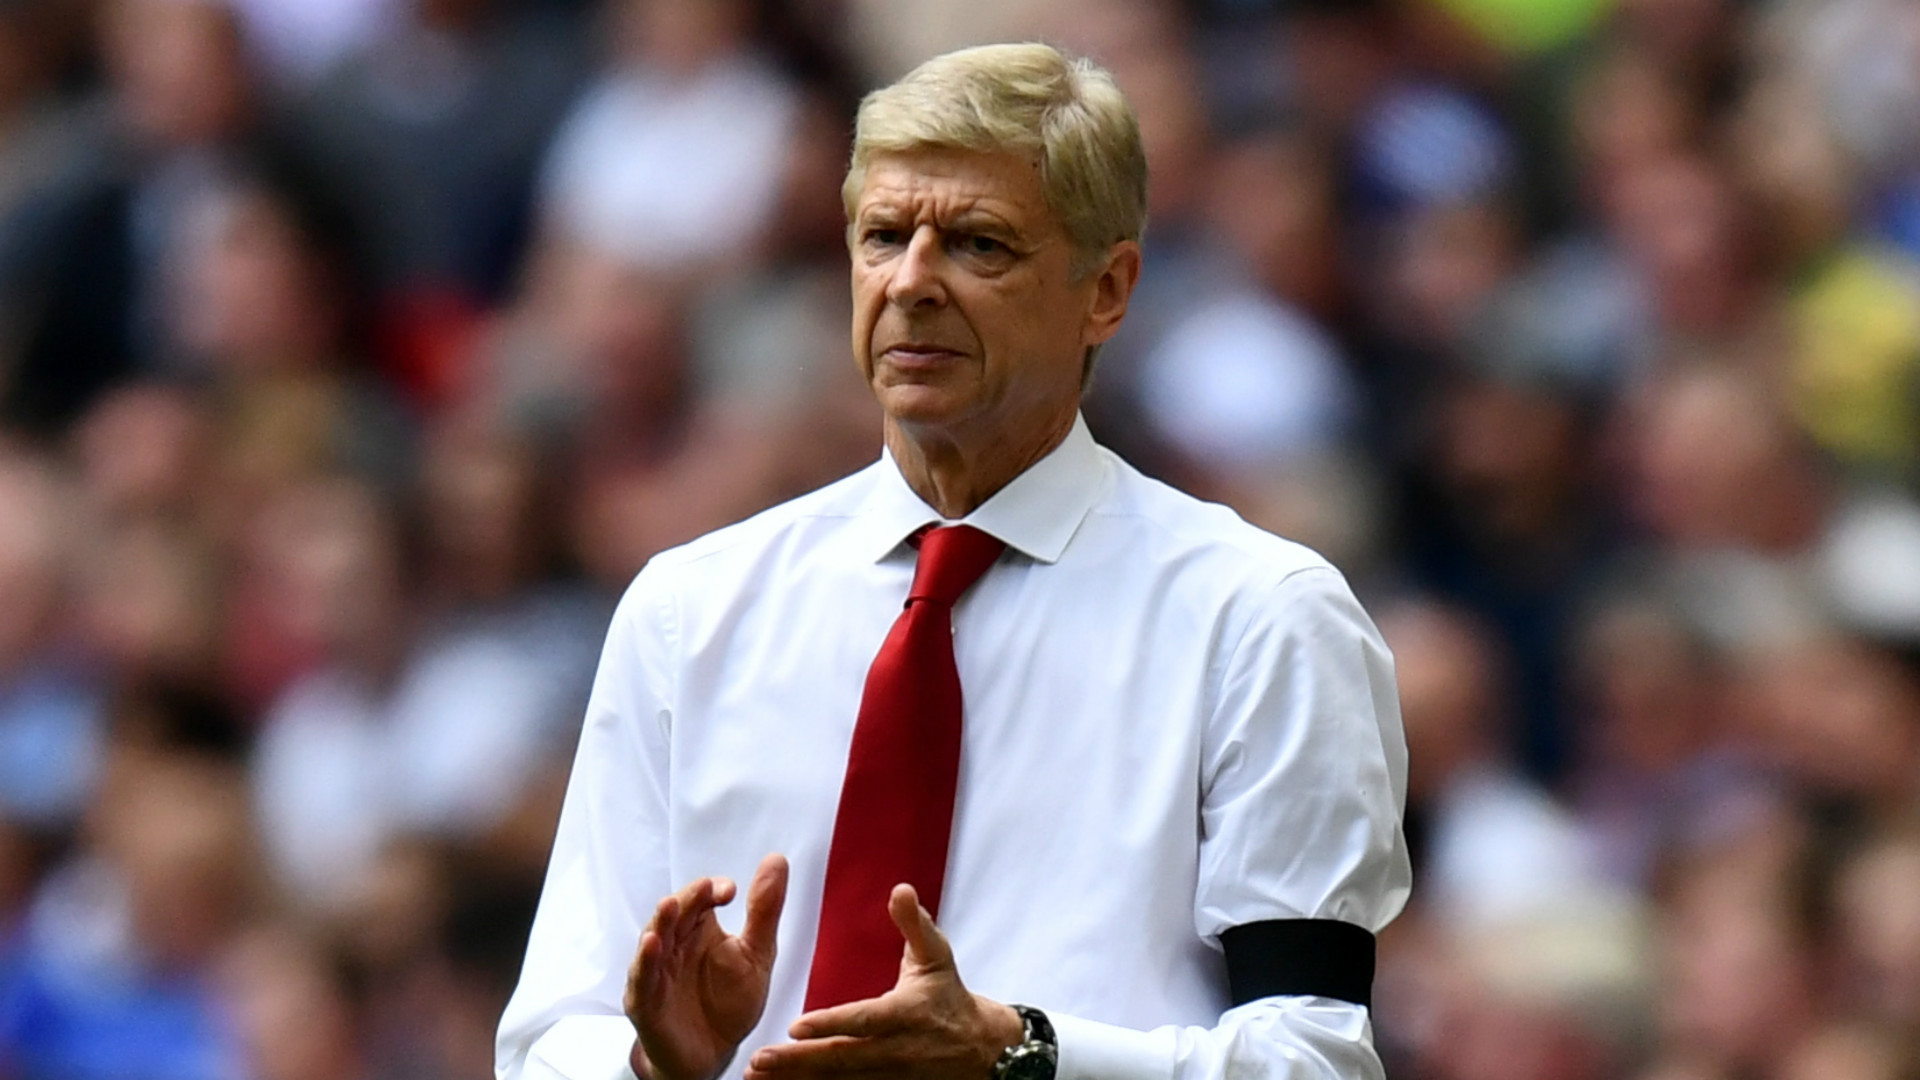 Arsenal face competition to sign Arsene Wenger's number one target, reveals insider